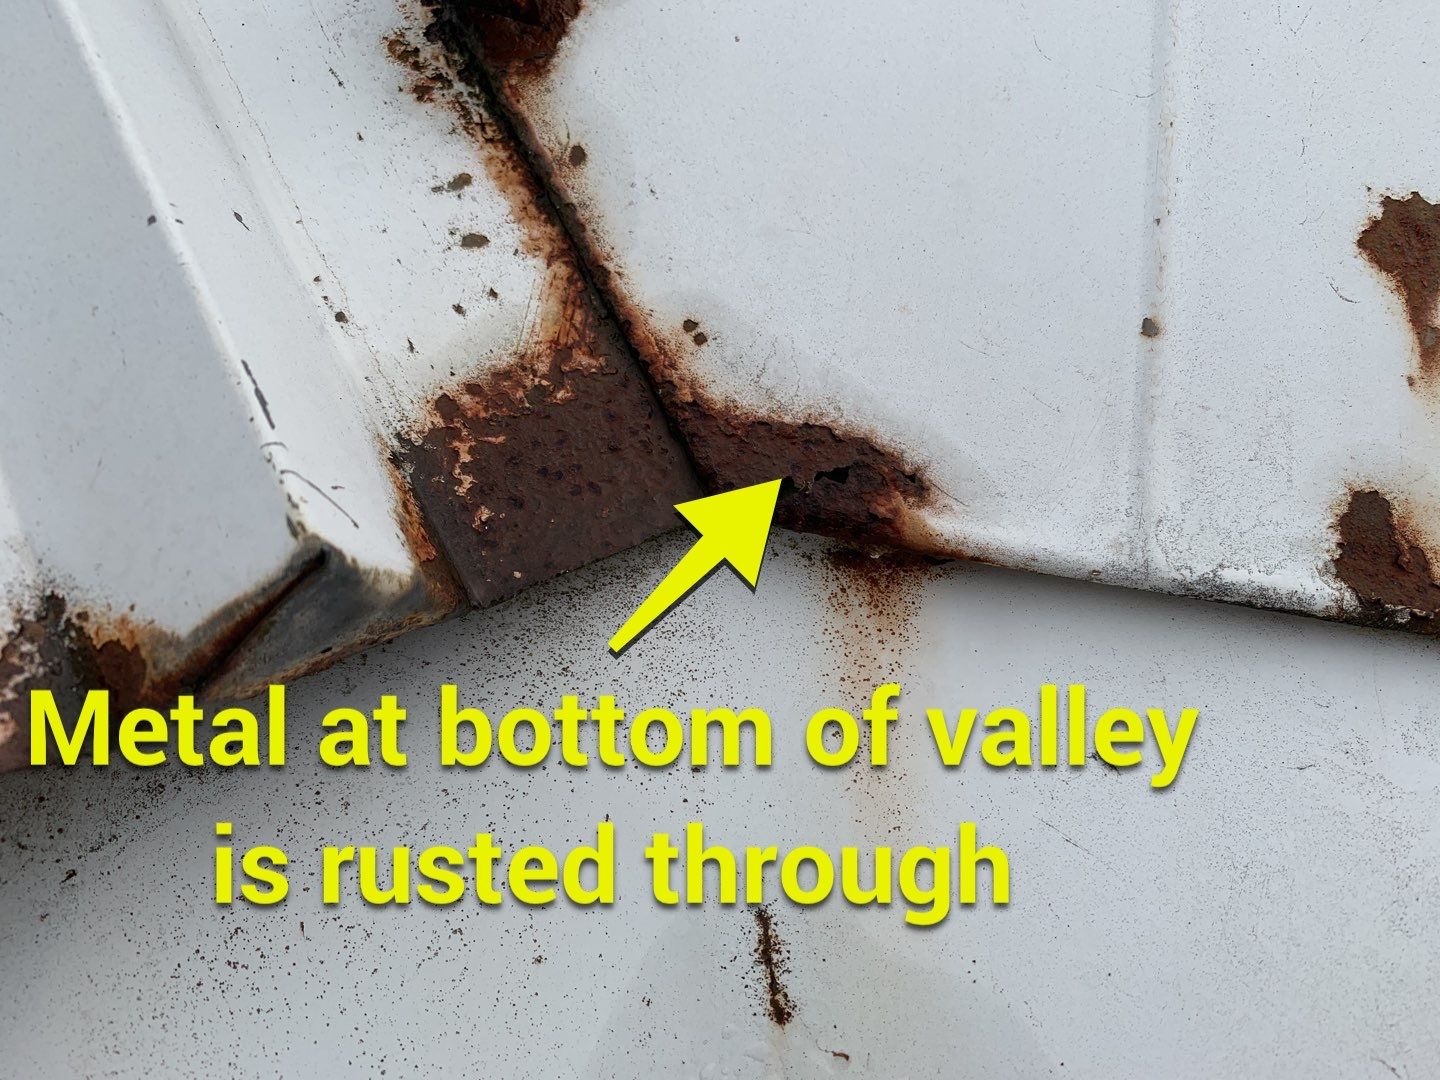 metal at bottom of valley is rusted through